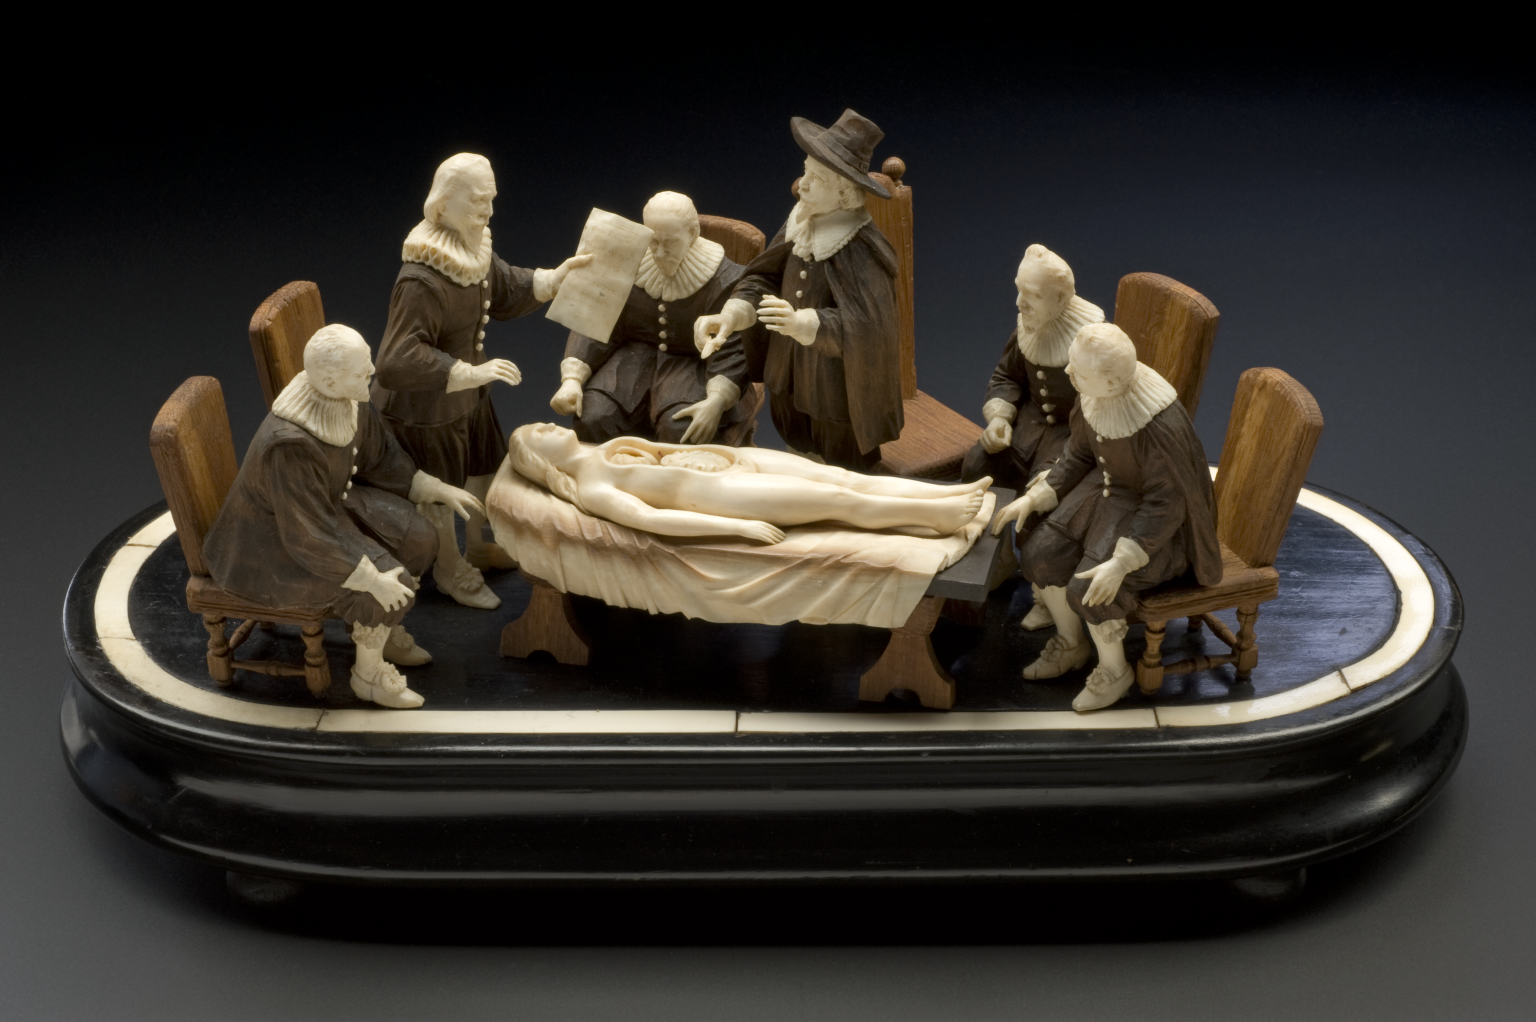 Model of Dr Tulp\'s Anatomy Lesson, Europe, 1701-1800 | History of ...